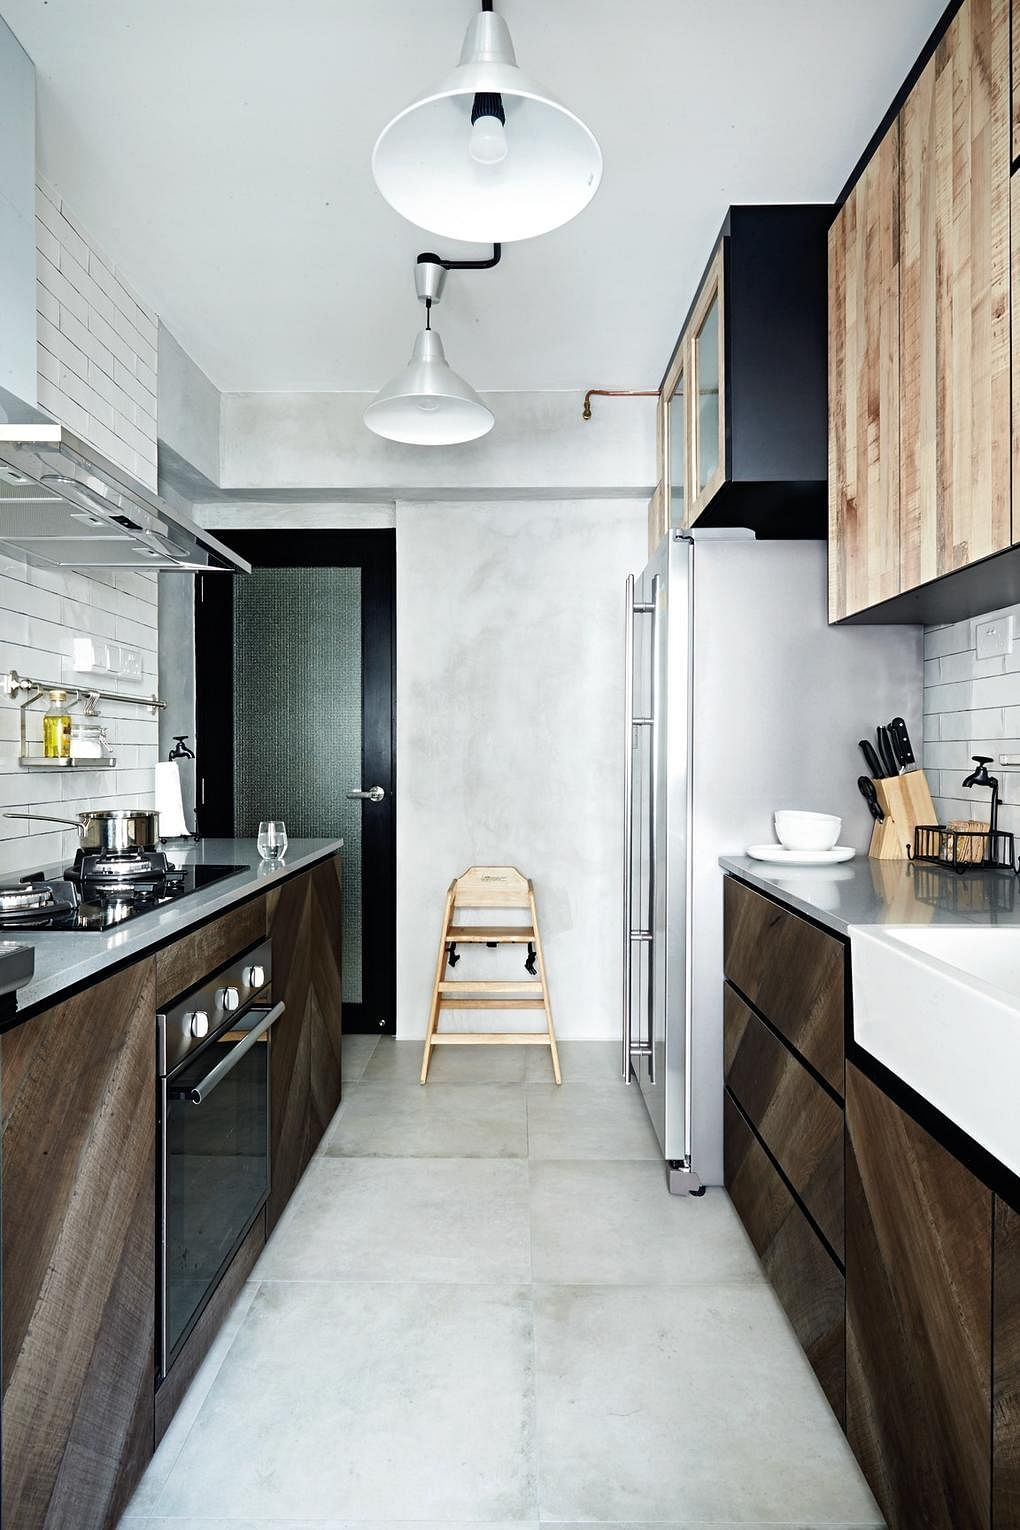 Renovation: How to plan your kitchen and the best layout for your home 4